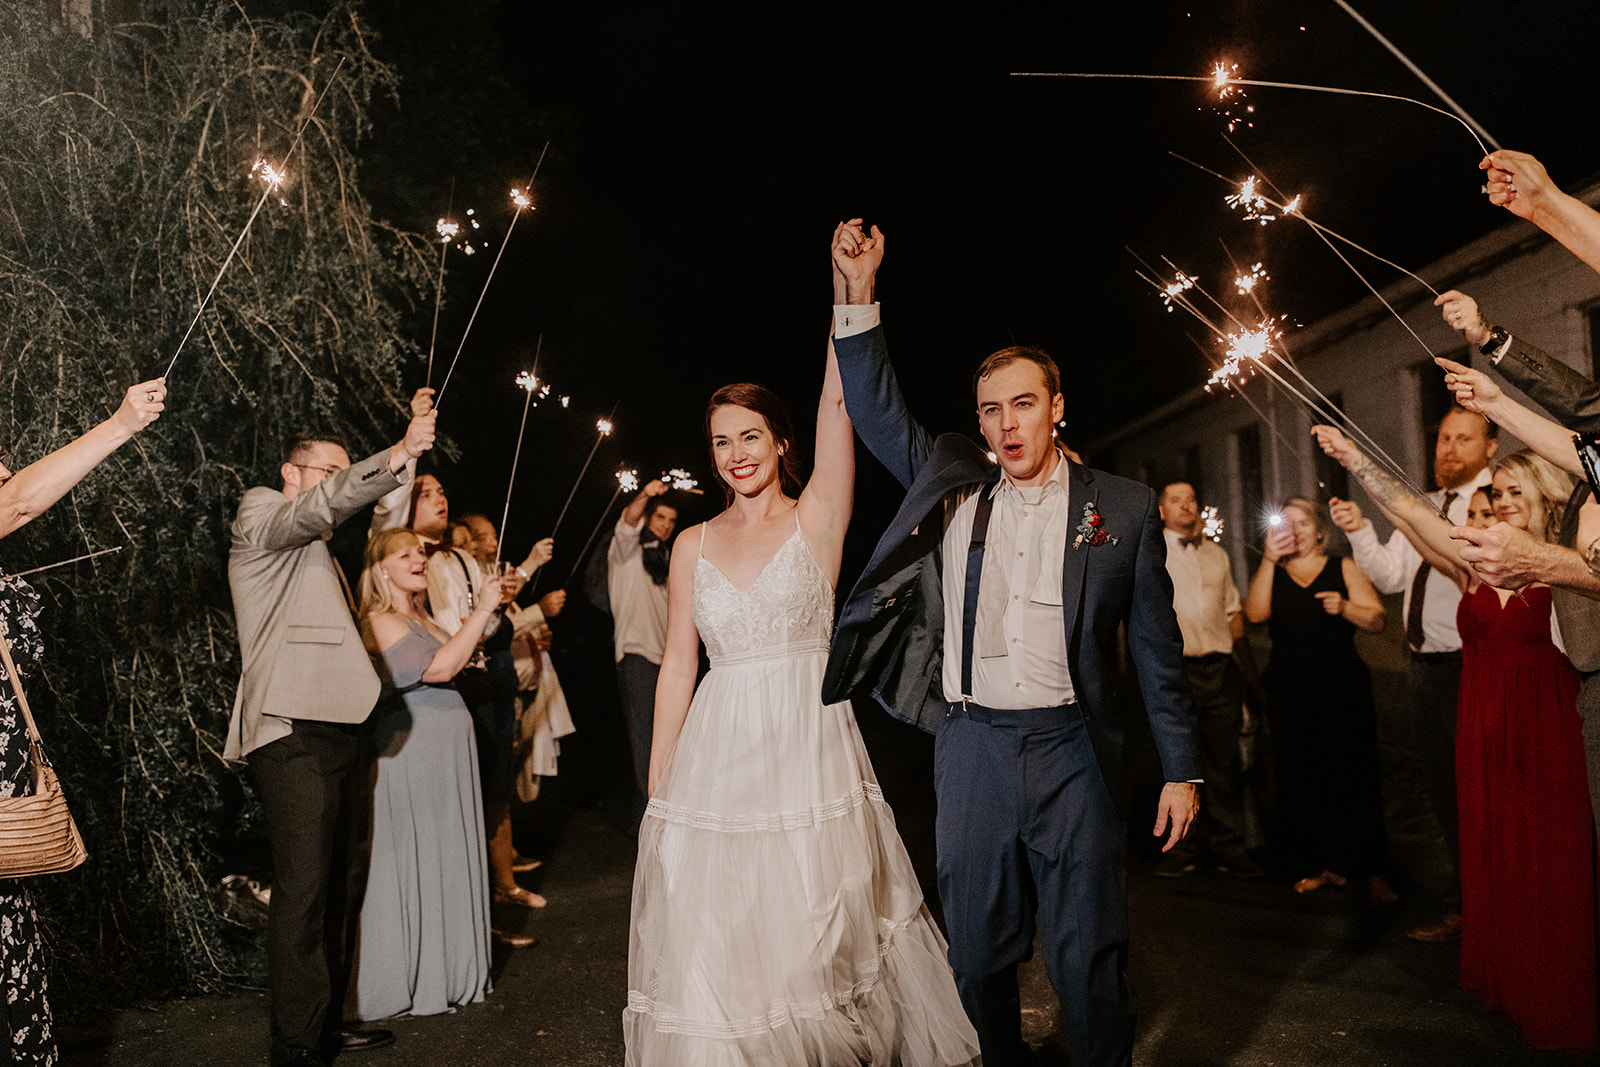 Sparkler Wedding Exit | Nashville Bride Guide